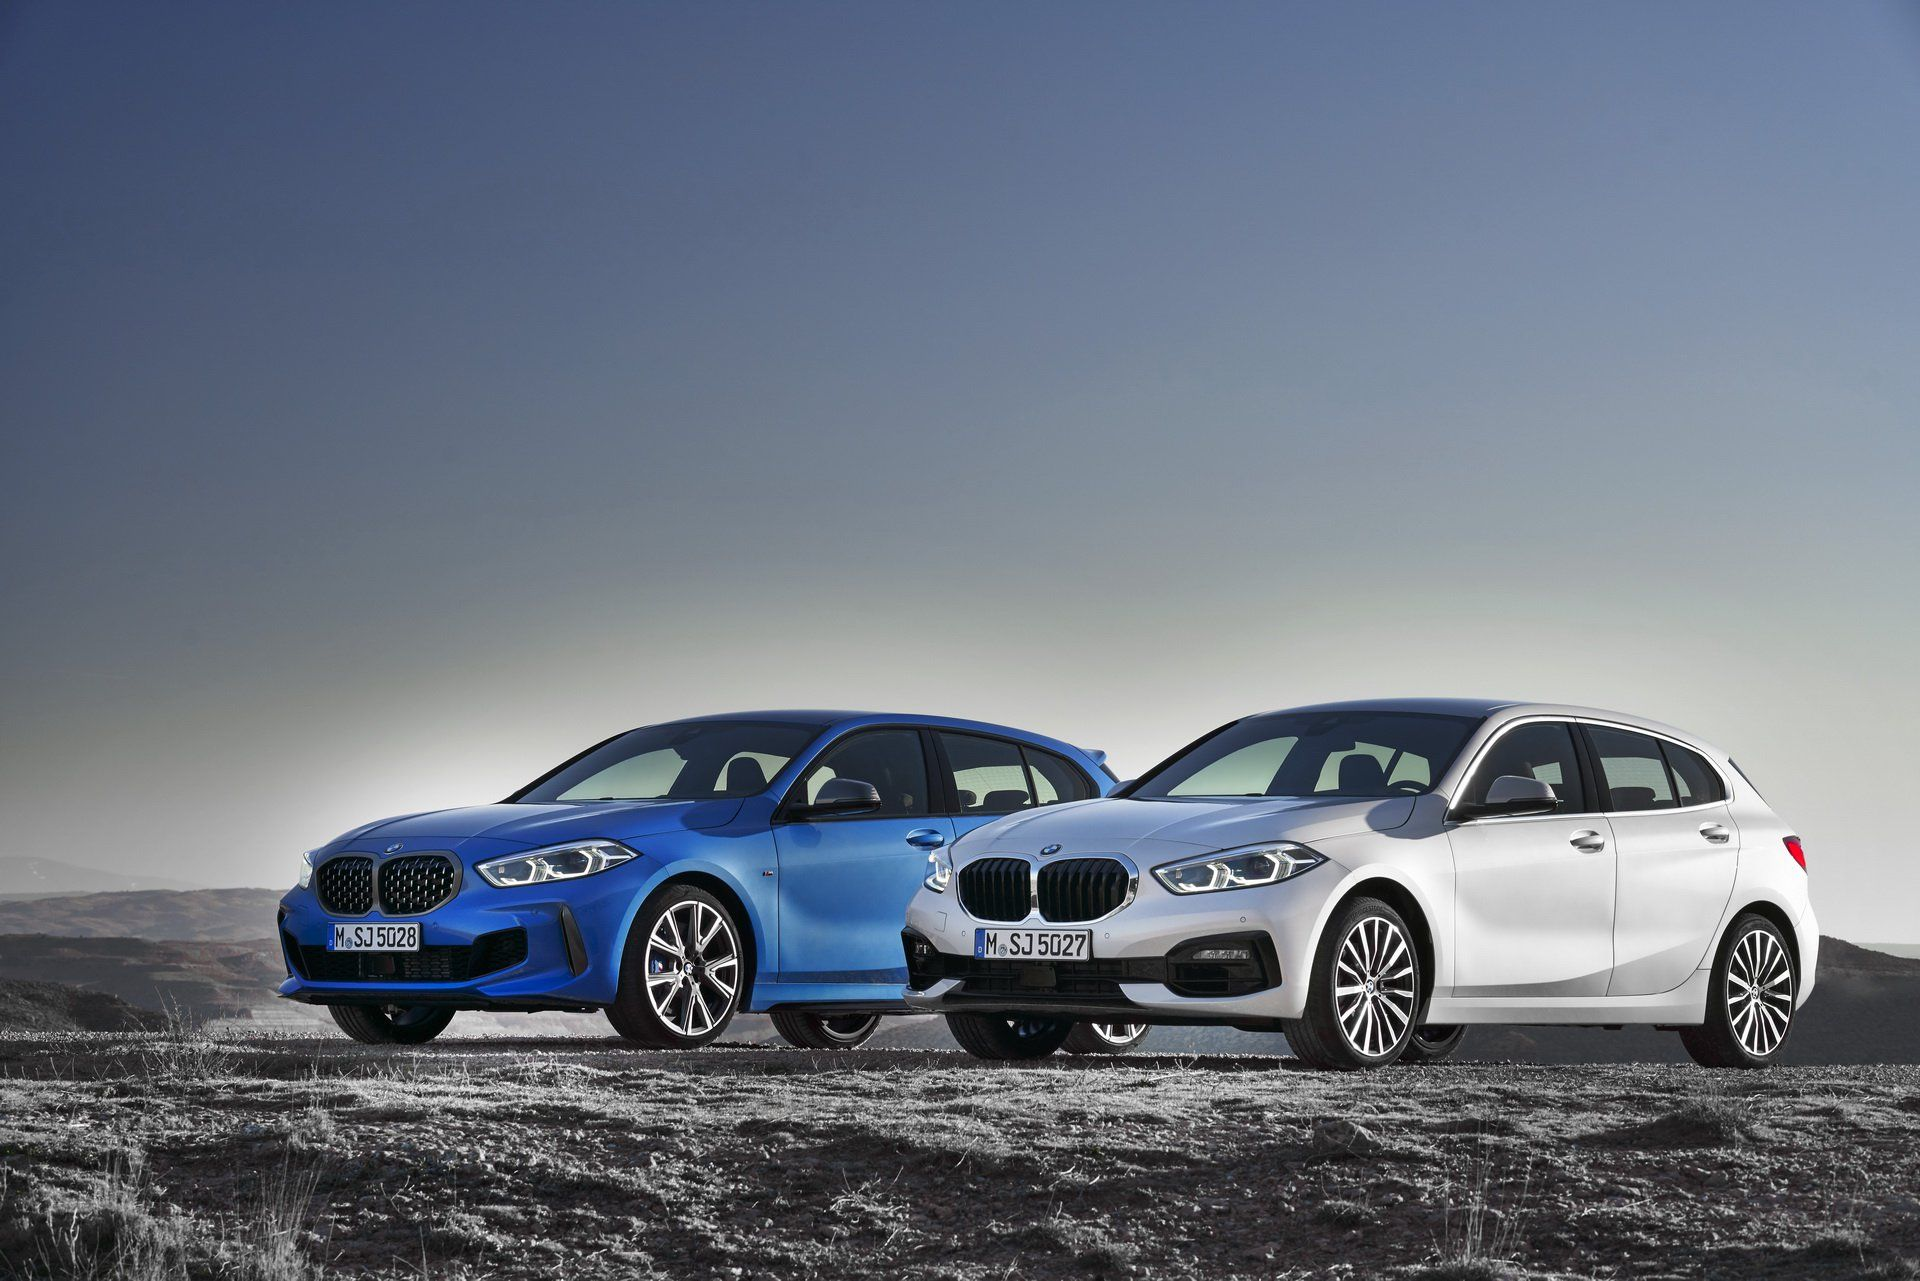 2020 Bmw 1 Series Priced From 24 430 Otr In The Uk Bmw 1 Series Bmw Mercedes Benz Classic